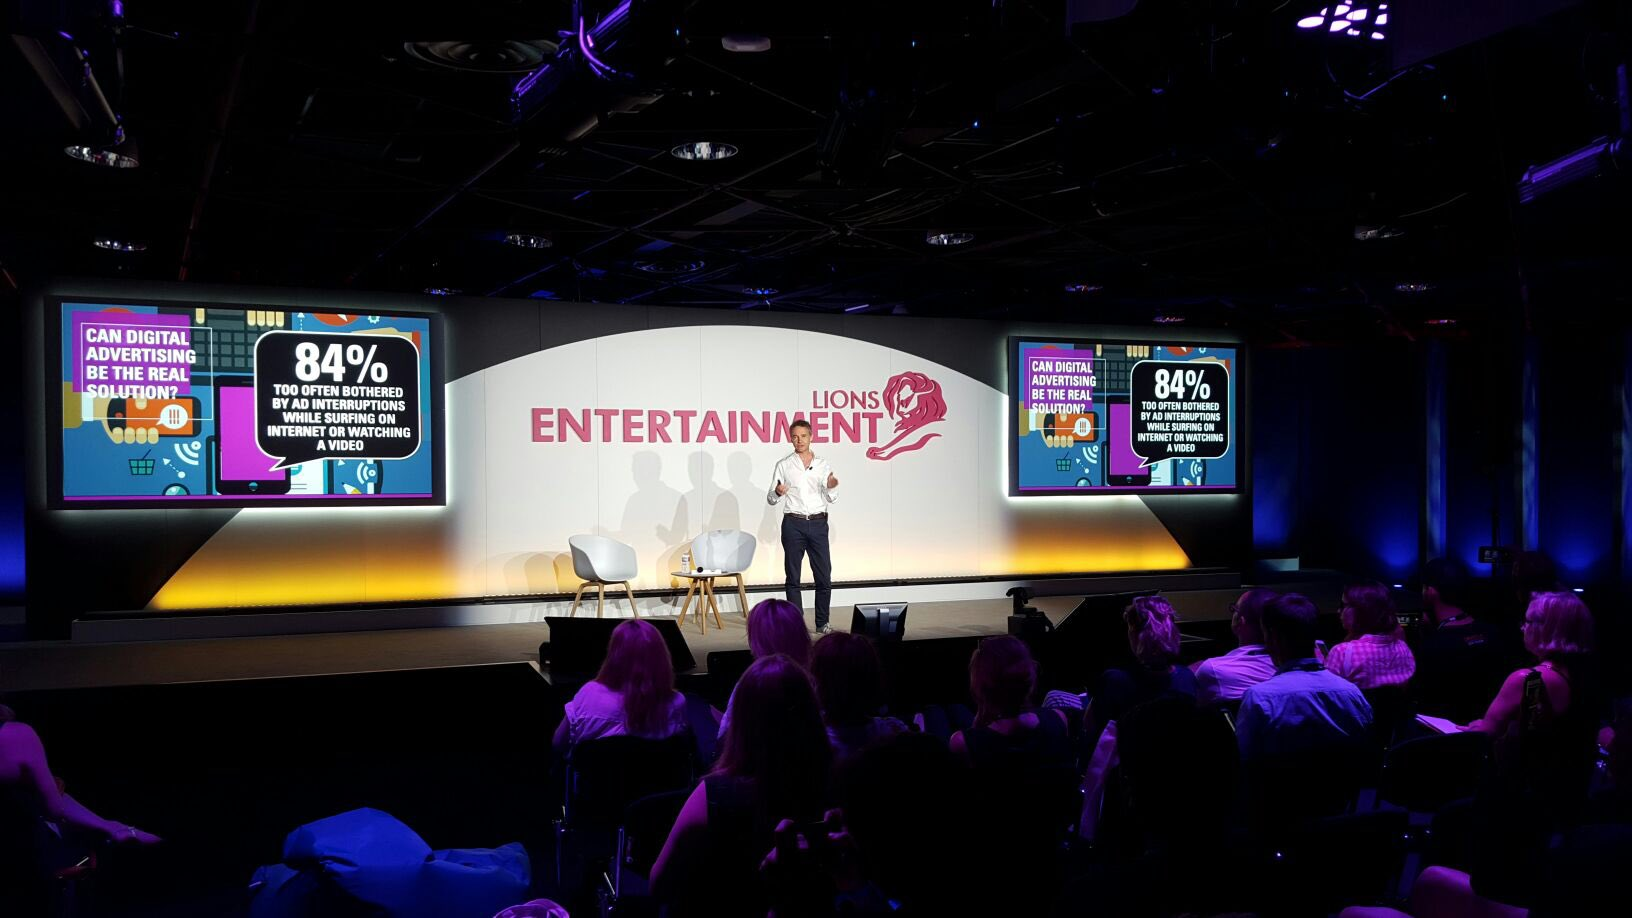 ".@Lucienboyer now on stage for his keynote ""Branded entertainment- the New age of marketing?"" #CannesLions https://t.co/Fshf4tqVgp"